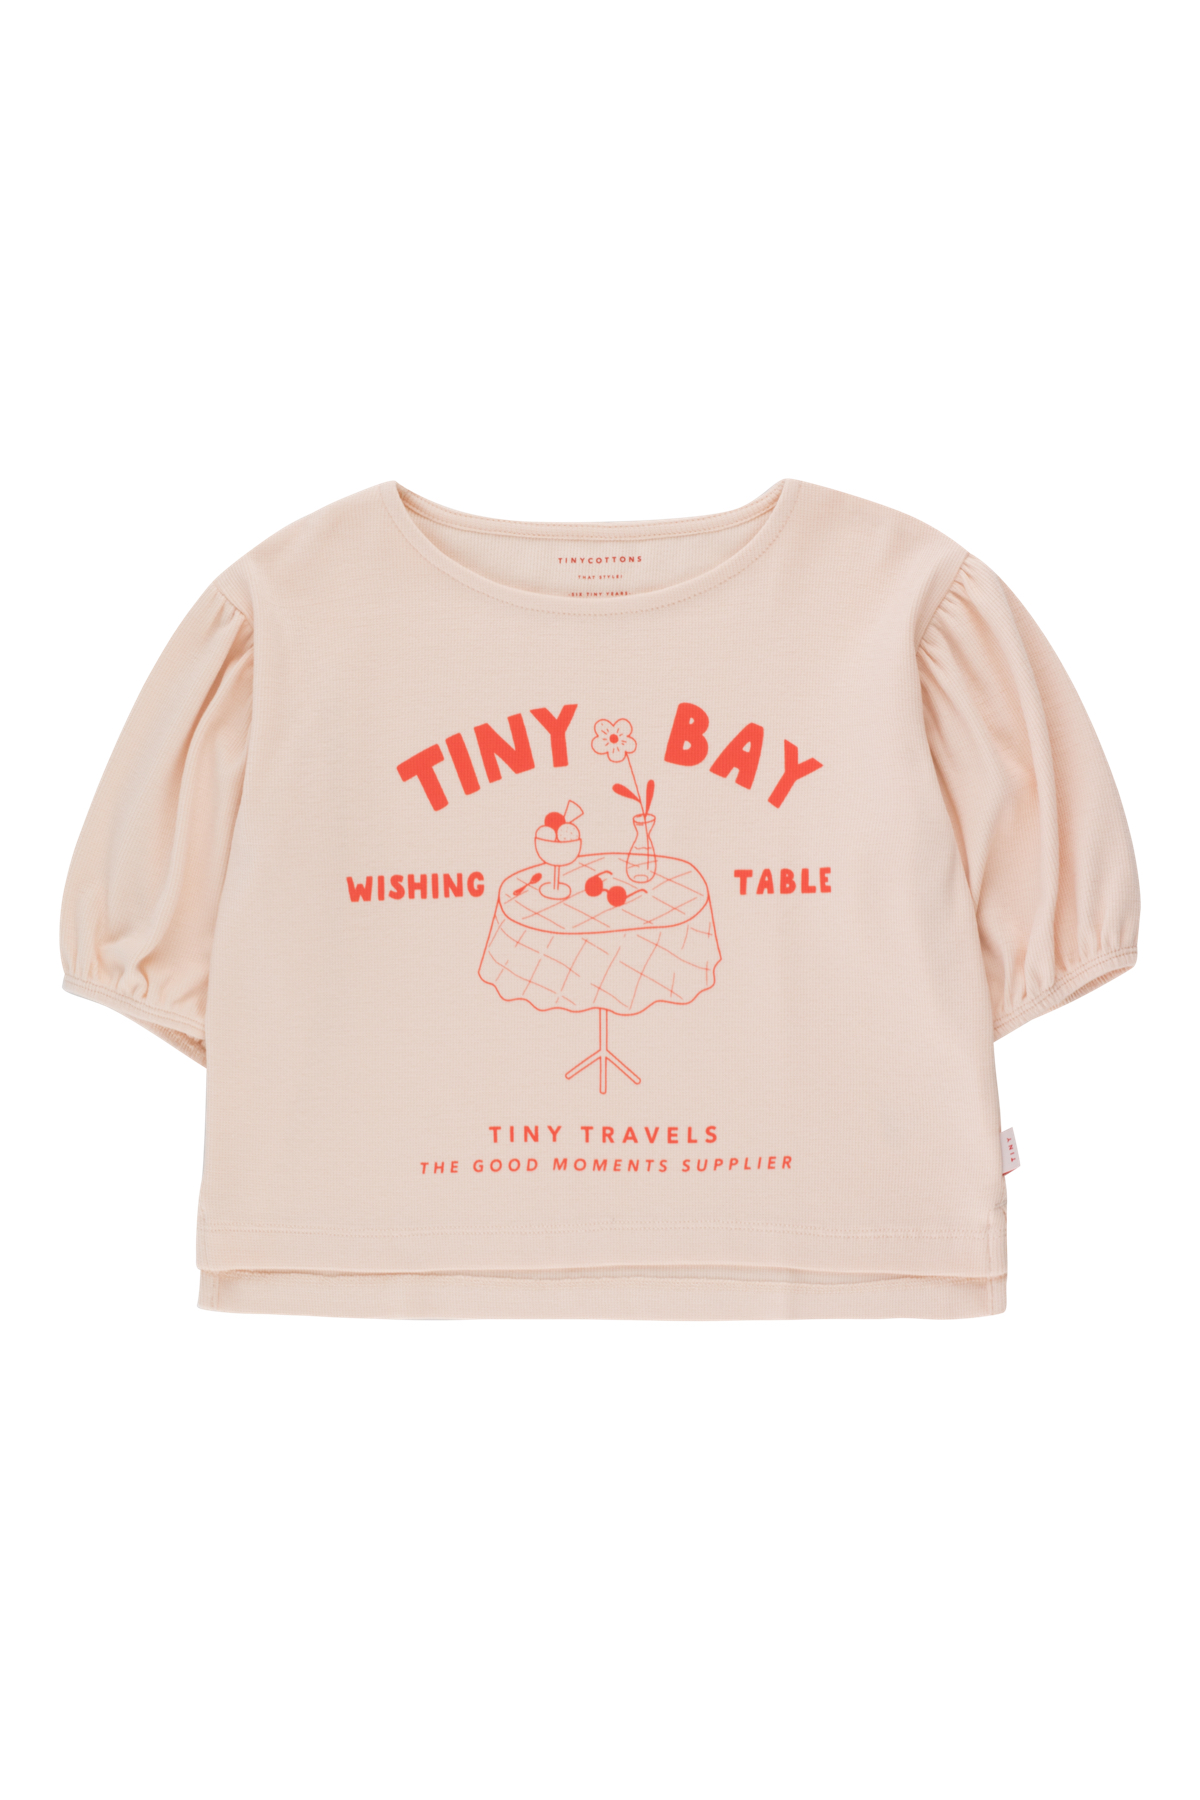 tinycottons wishing table blouse pastel pink red